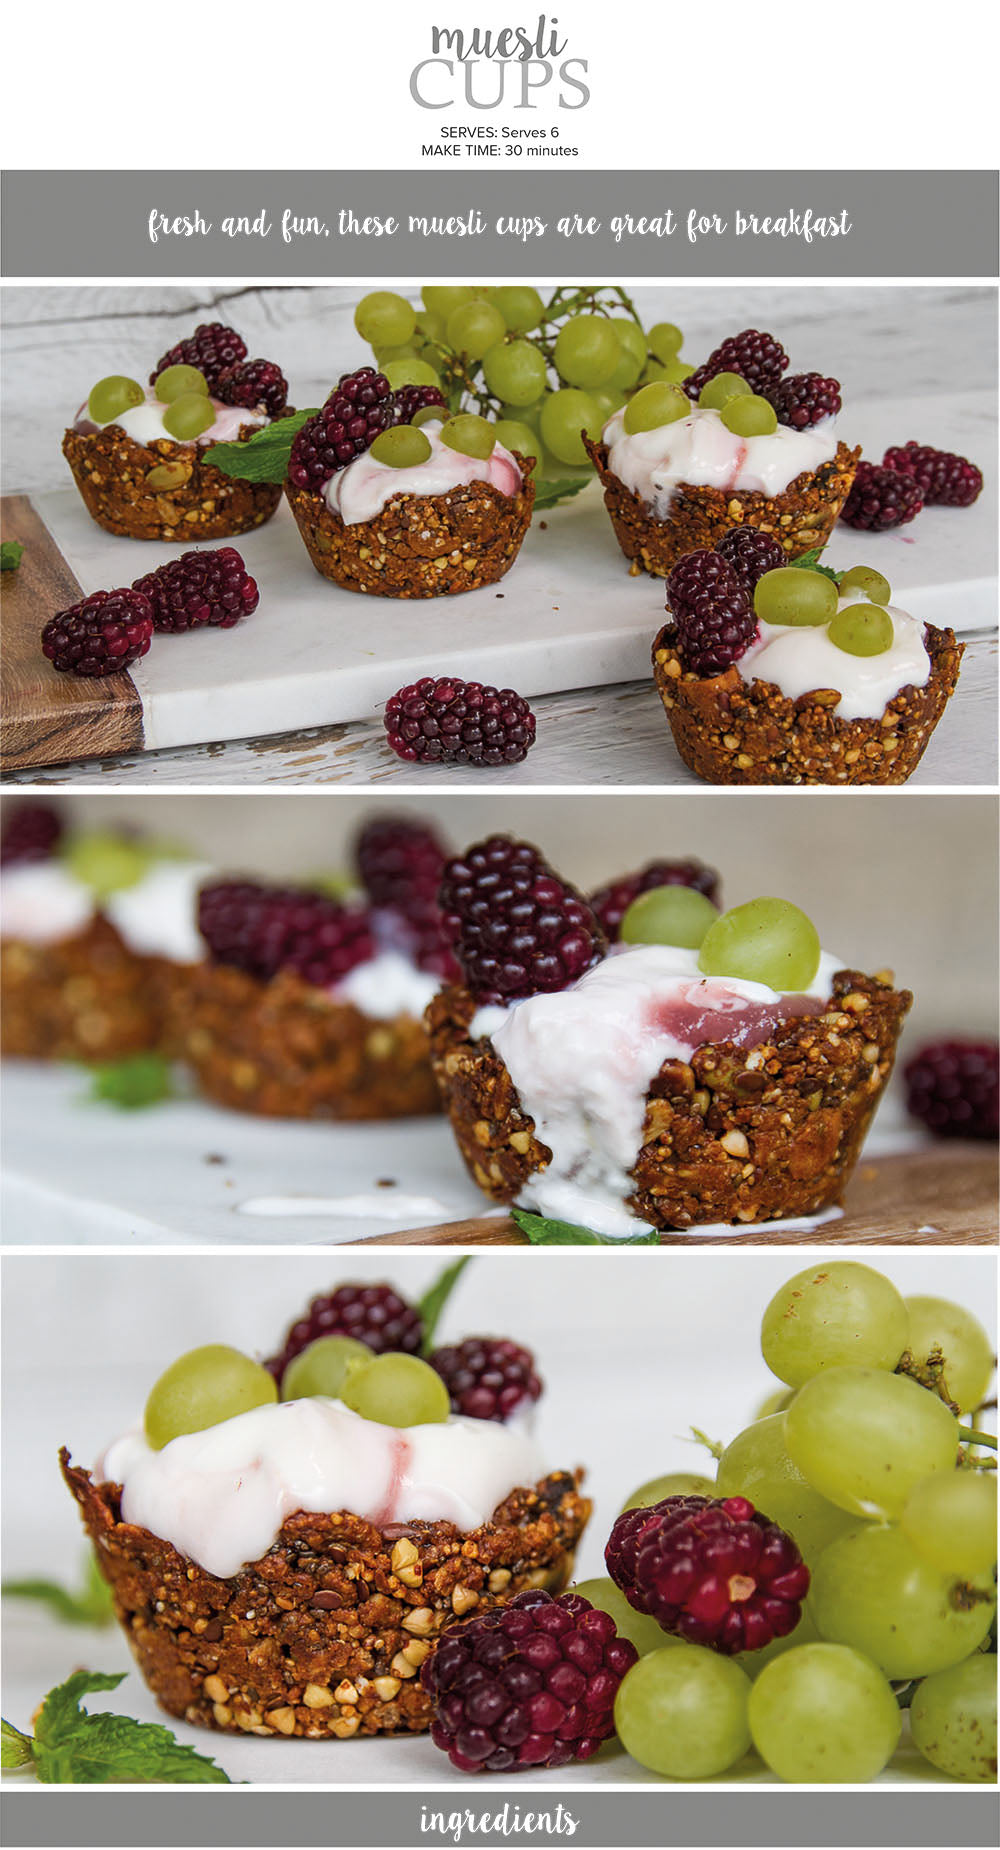 Muesli cups recipe